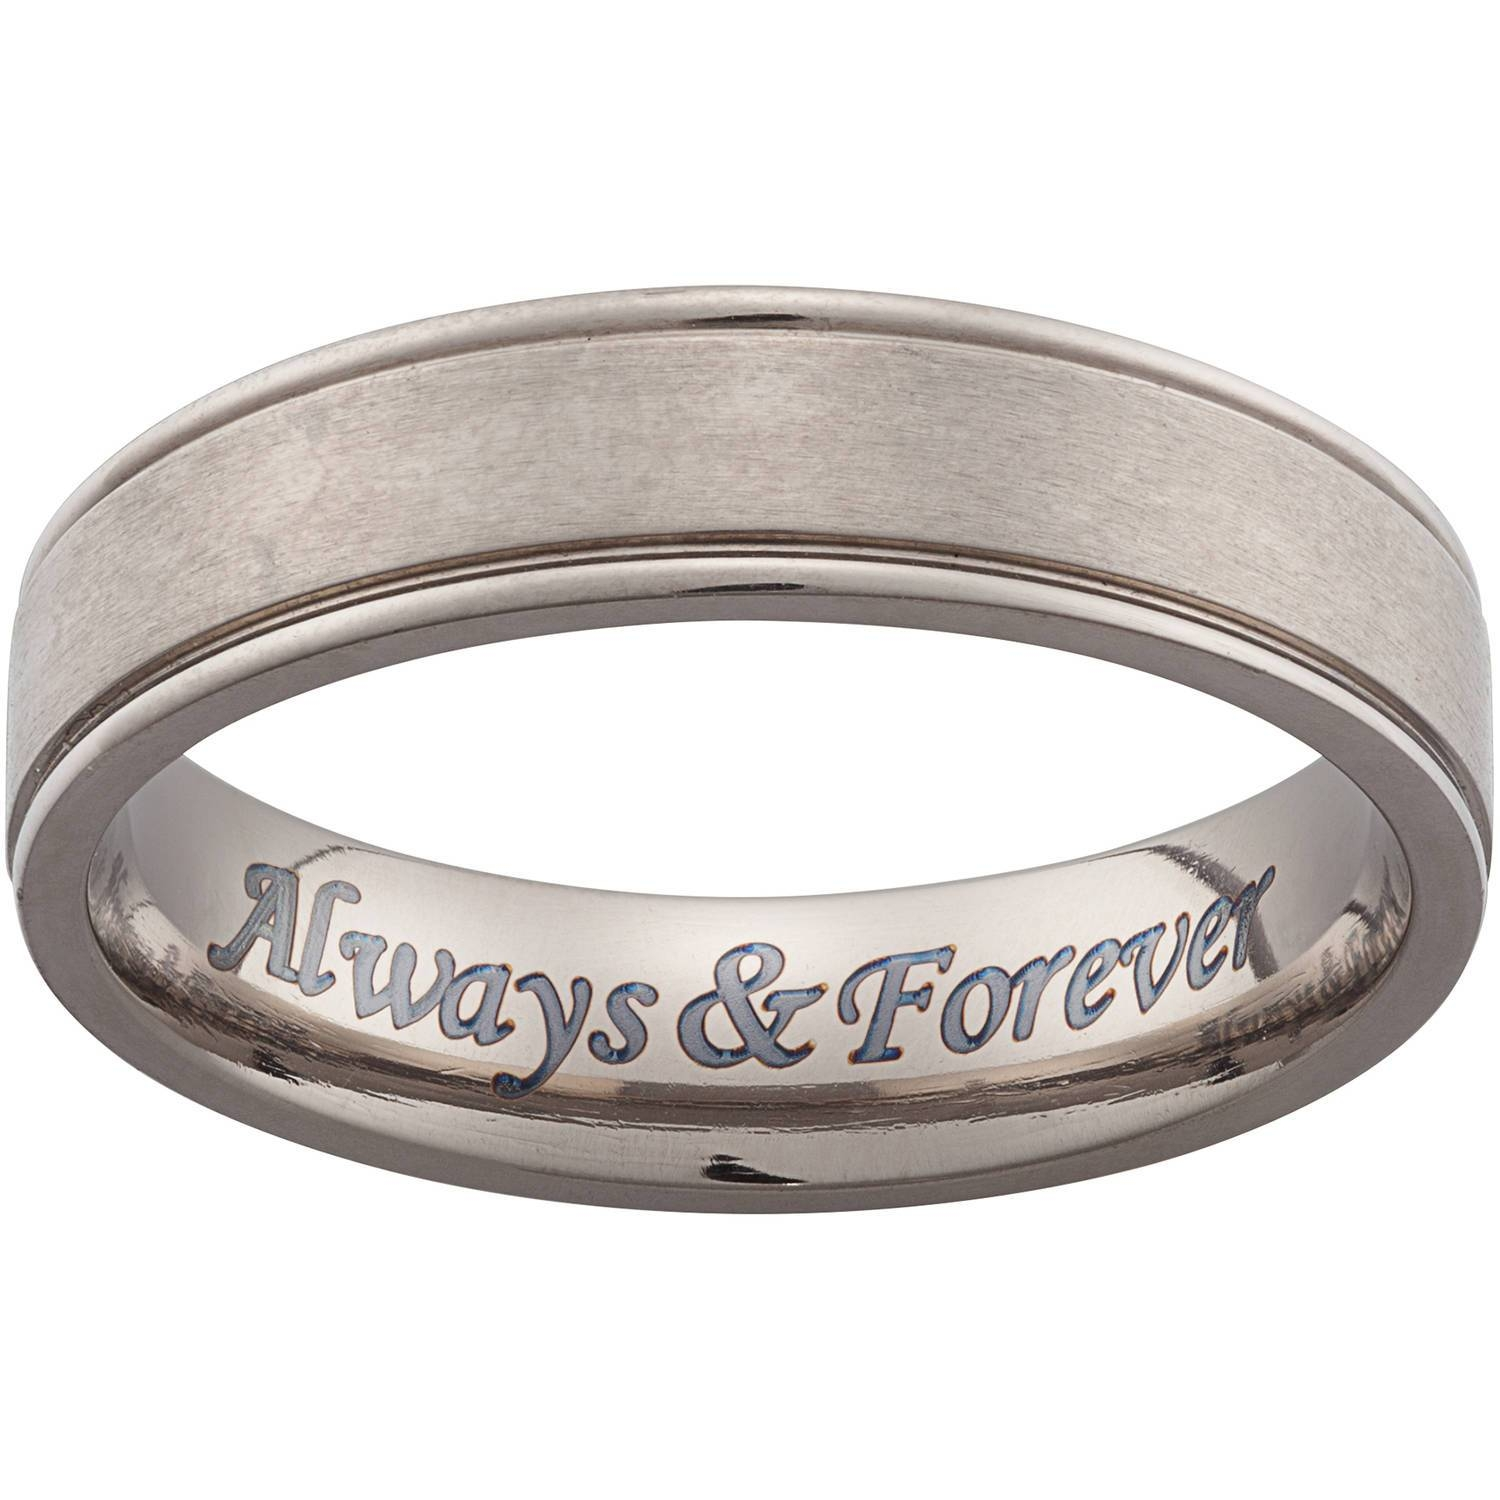 Personalized Stainless Steel Engraved Wedding Band – Walmart With Regard To Engraved Wedding Bands (View 7 of 15)